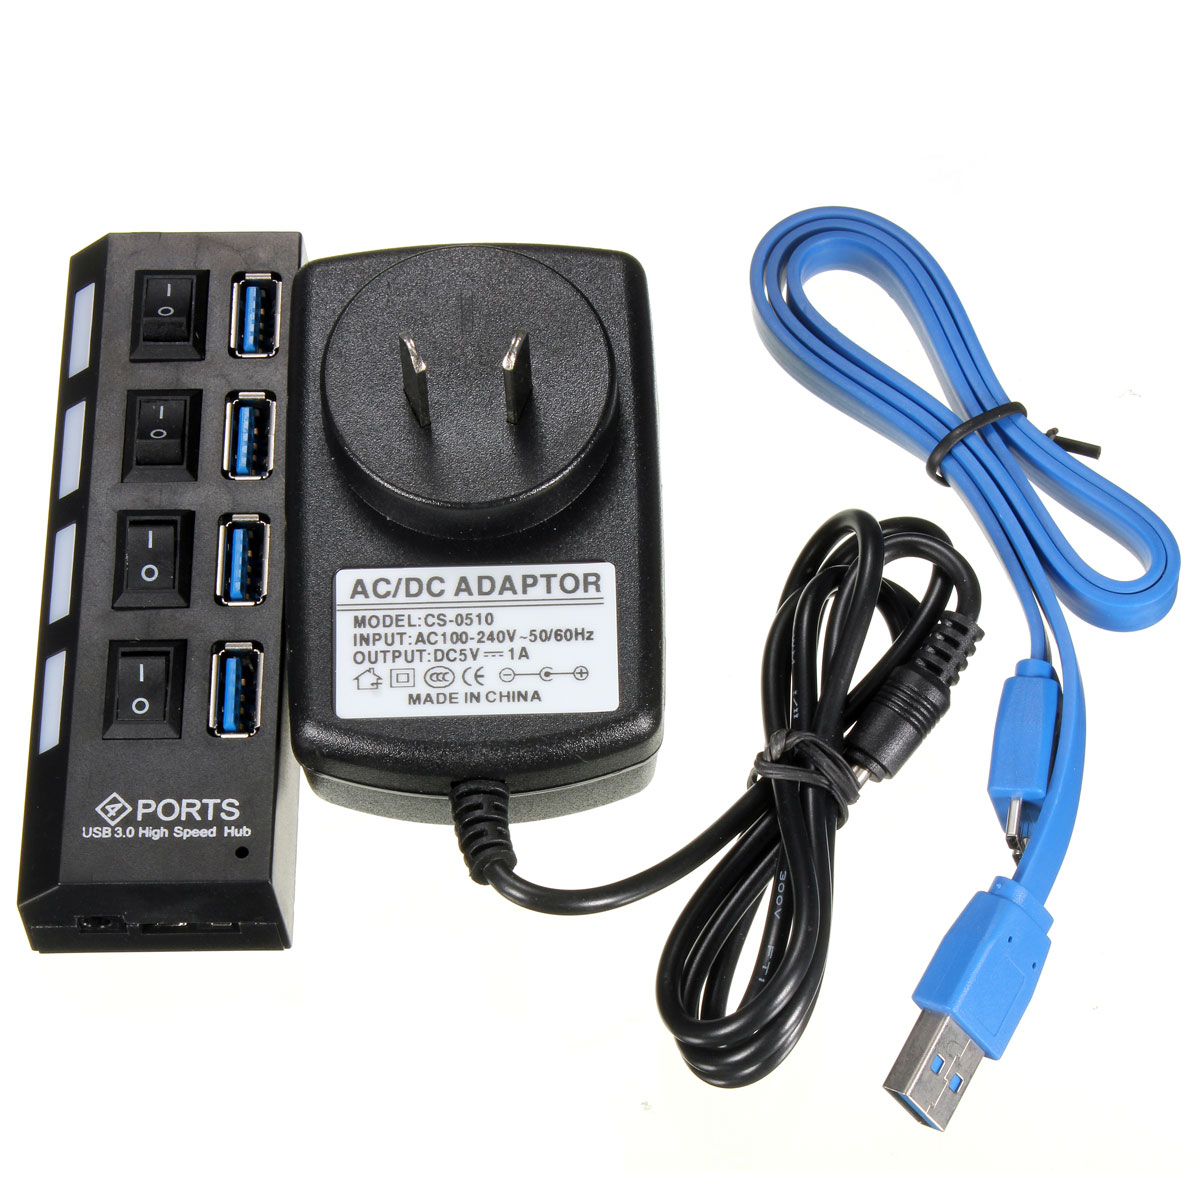 4 Ports USB 3.0 High Speed HUB Adapter with Switch Cable